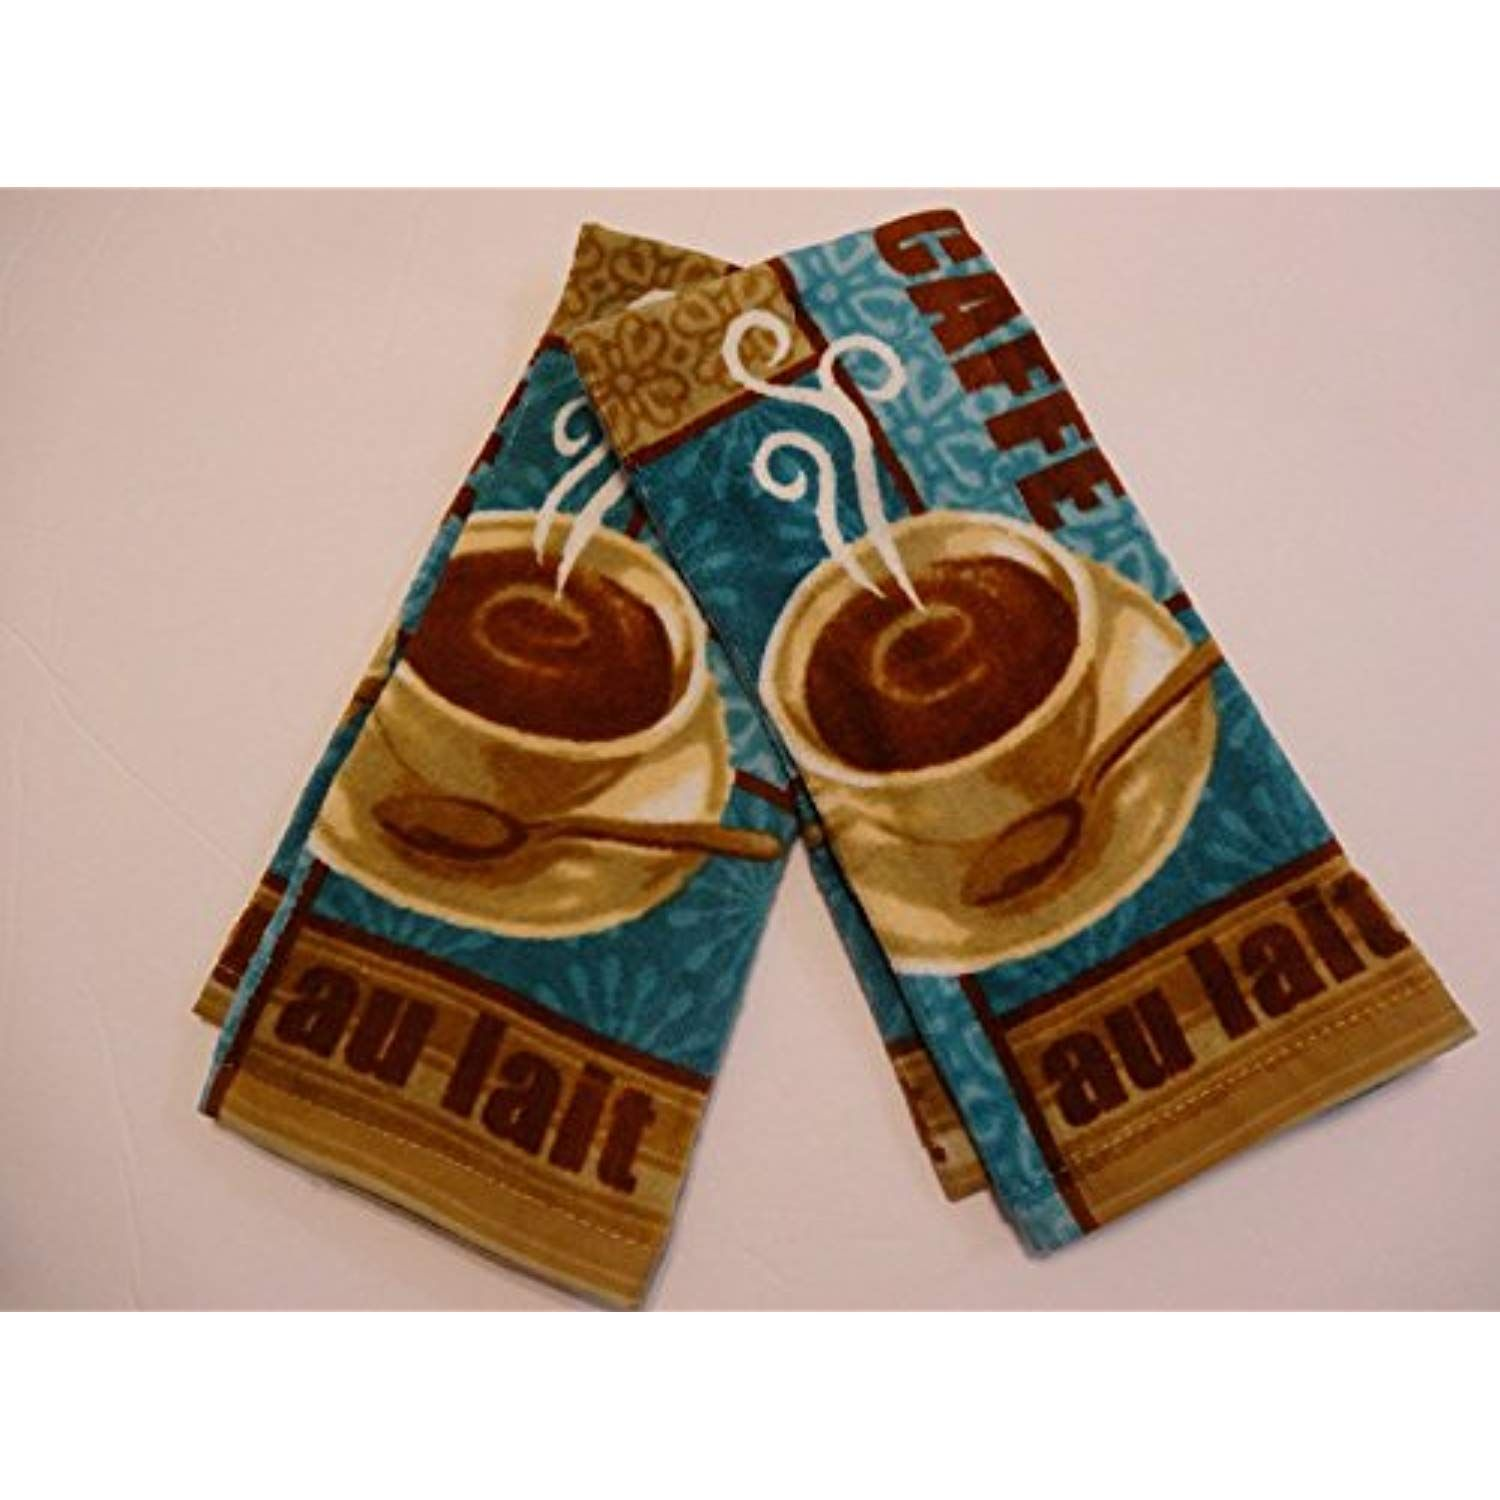 Attrayant Cafe Au Lait Coffee Latte Kitchen Towels 2pk ** To View ...